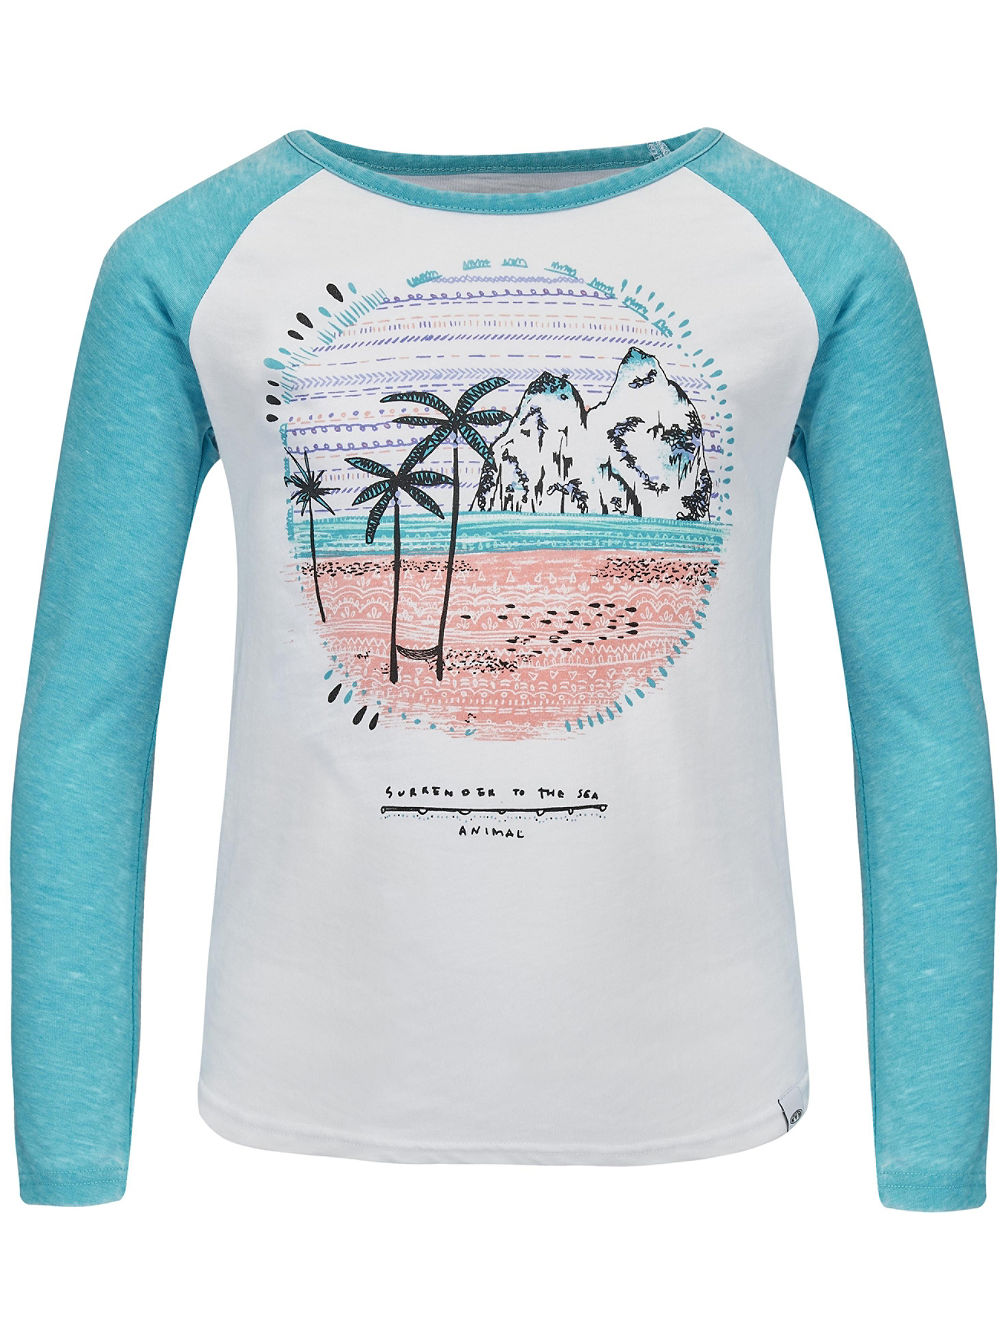 Mags T-Shirt LS Girls